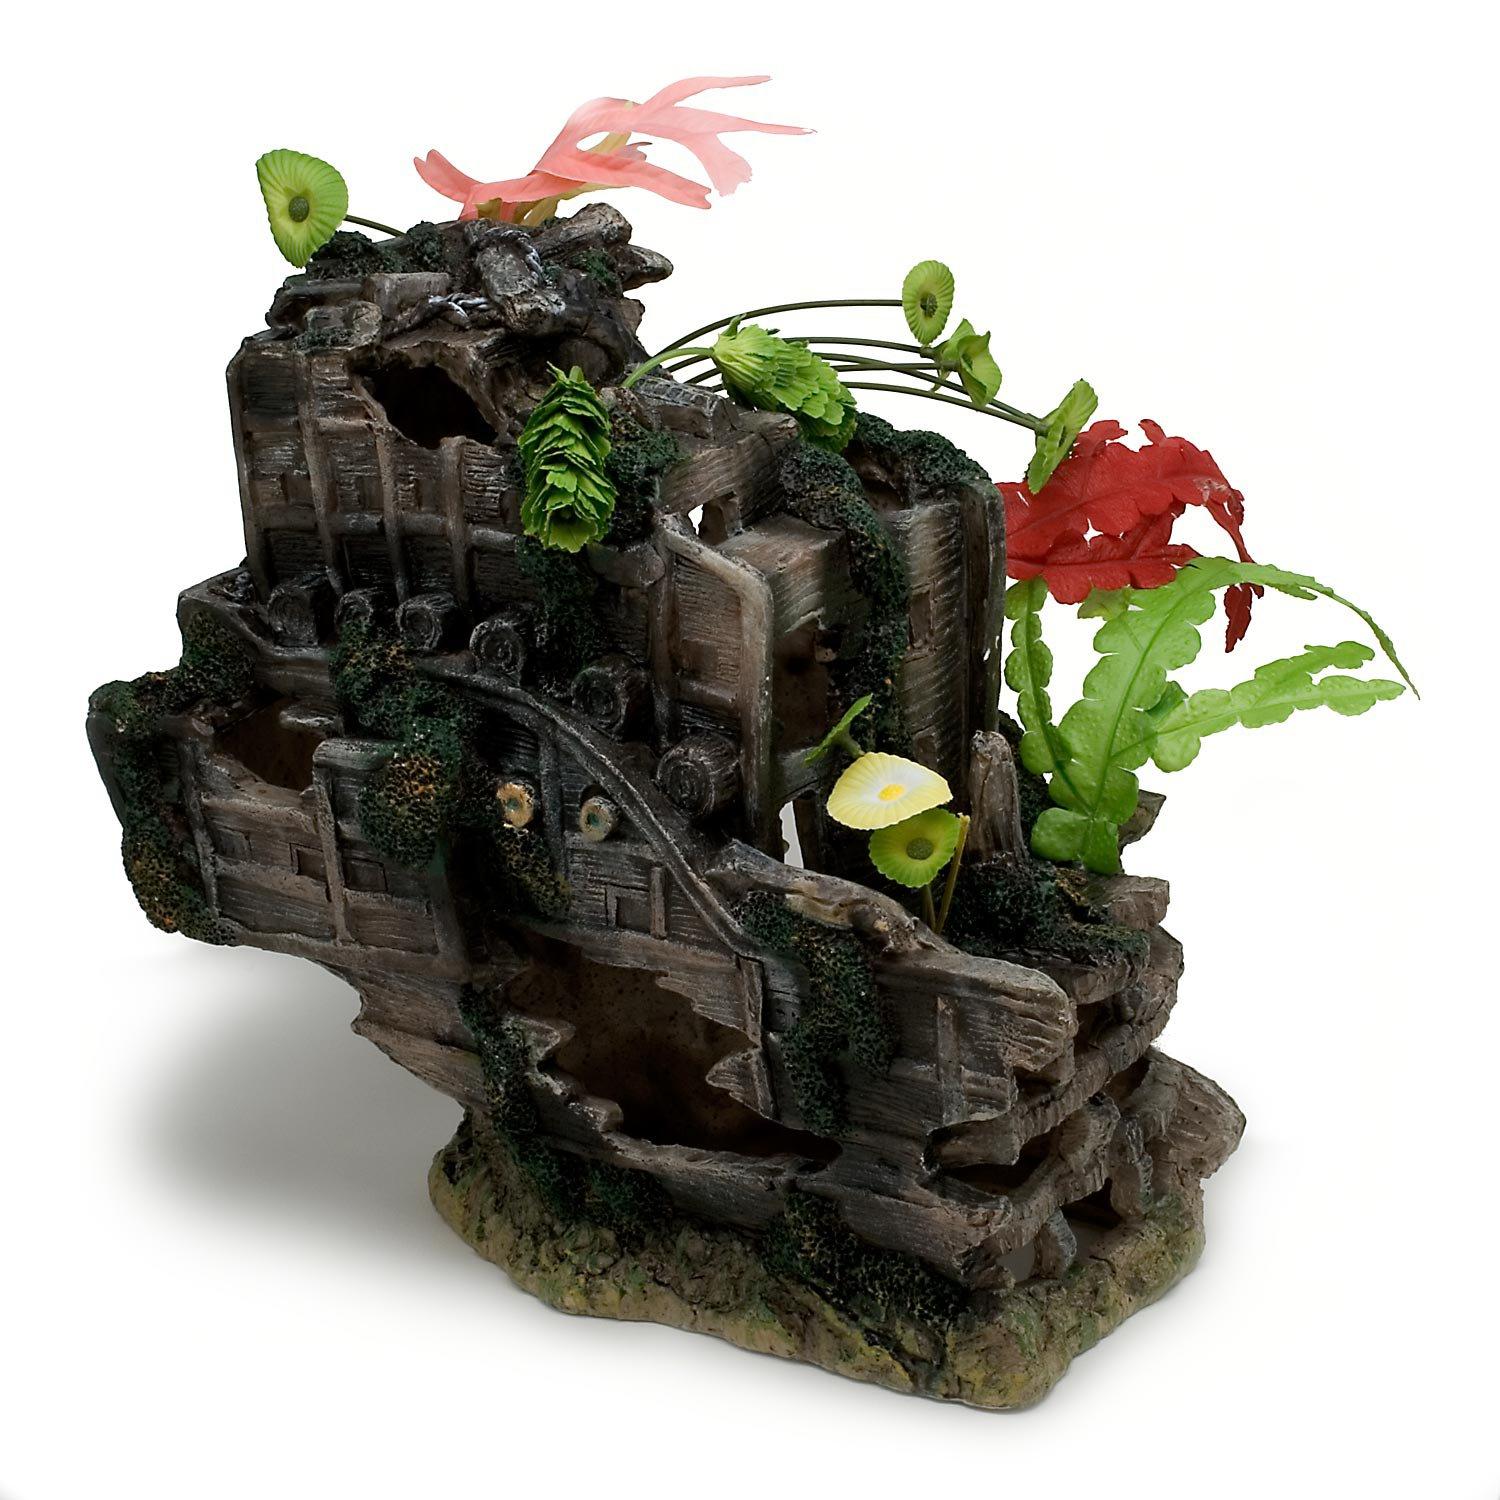 Penn plax sunken gardens shipwreck stern aquarium decor for Aquarium decoration shipwreck